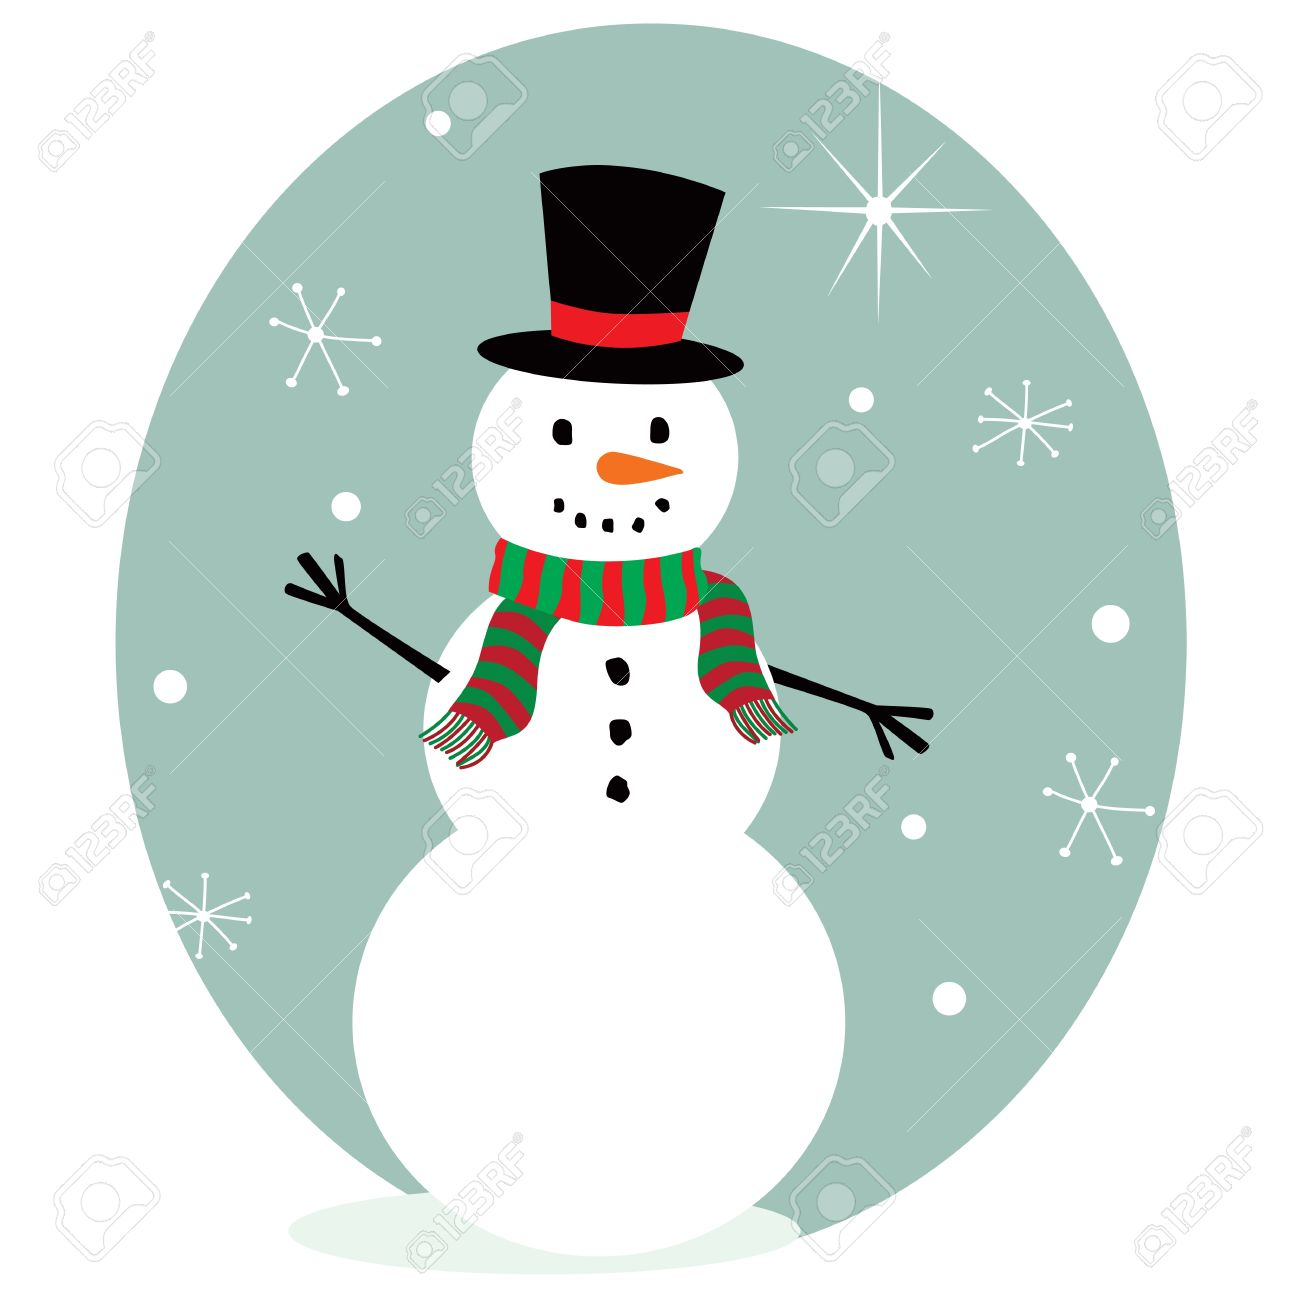 cute snowman royalty free cliparts vectors and stock illustration